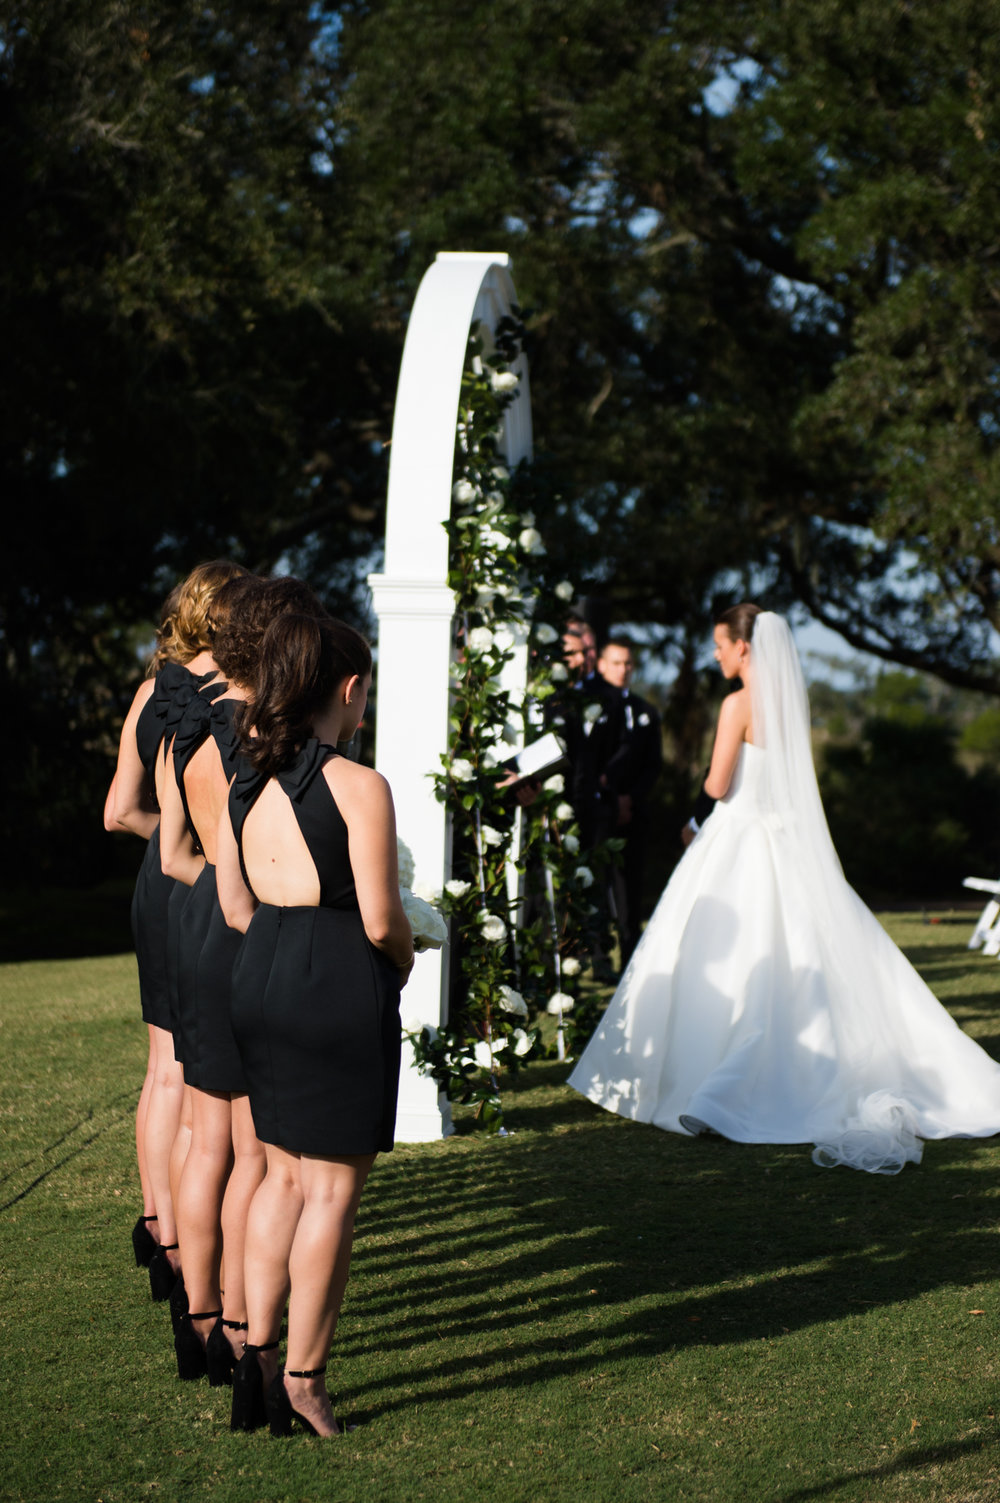 Bridesmaids dresses at Kiawah Island Wedding Ceremony